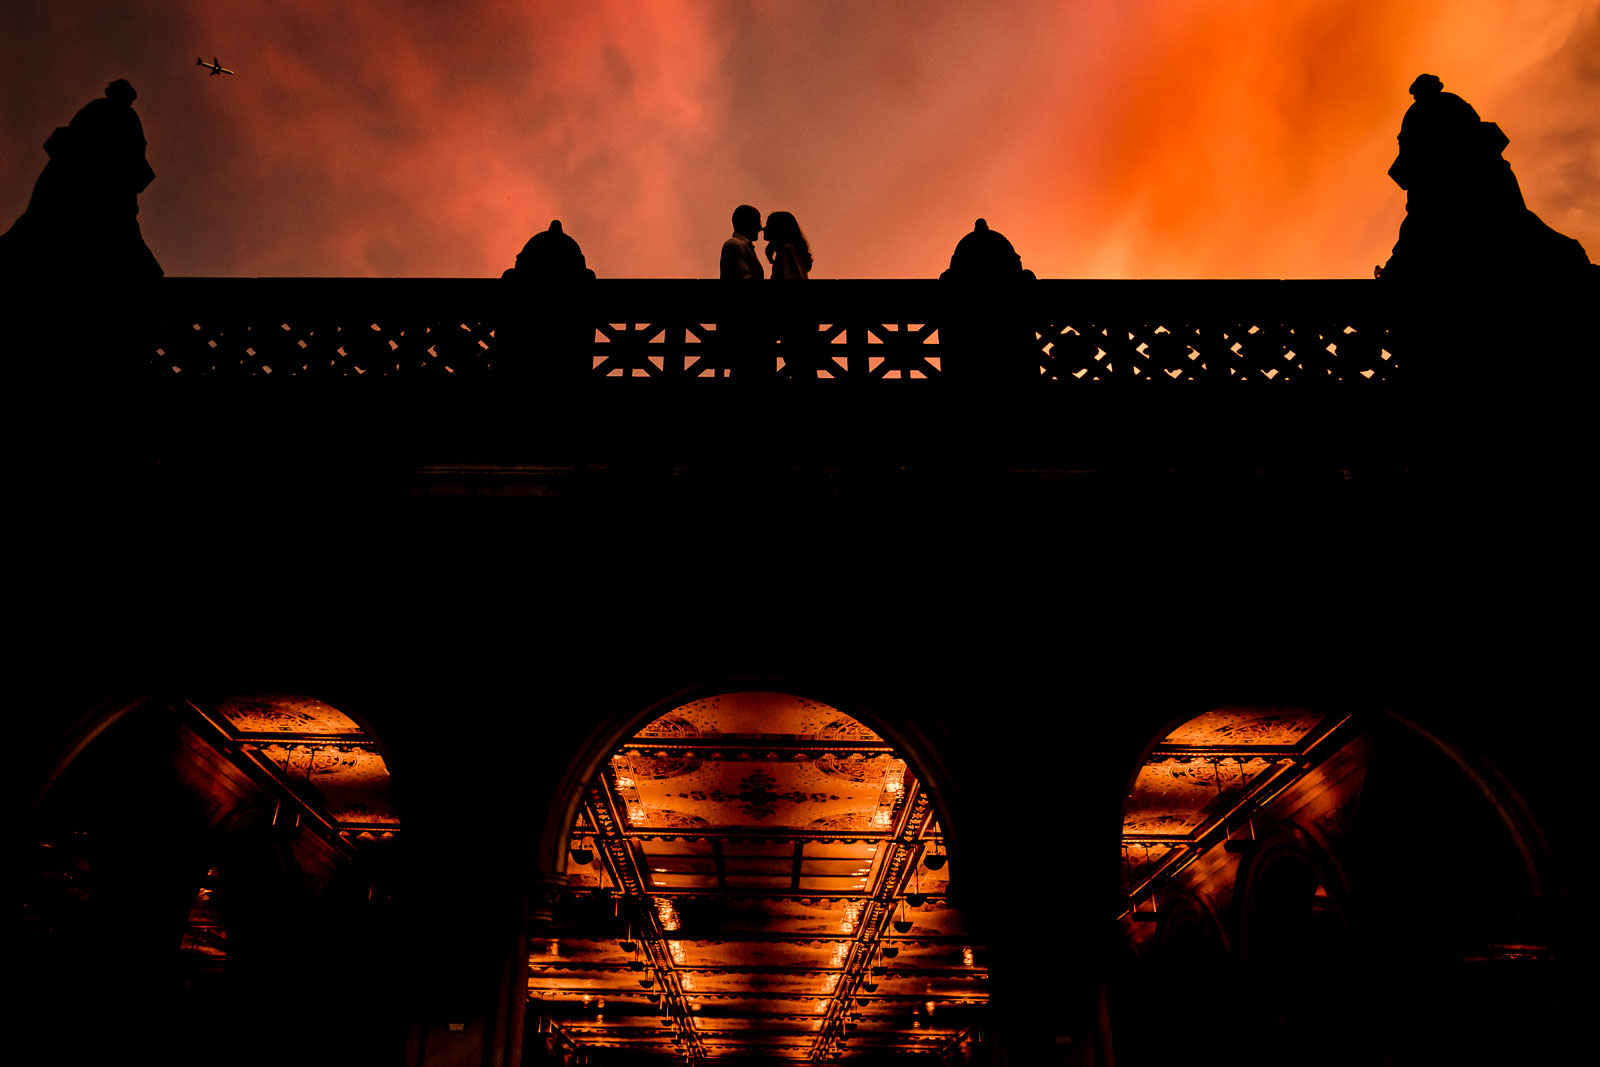 Couple silhouette with orange-red sunset at bethesda terrace in Central Park